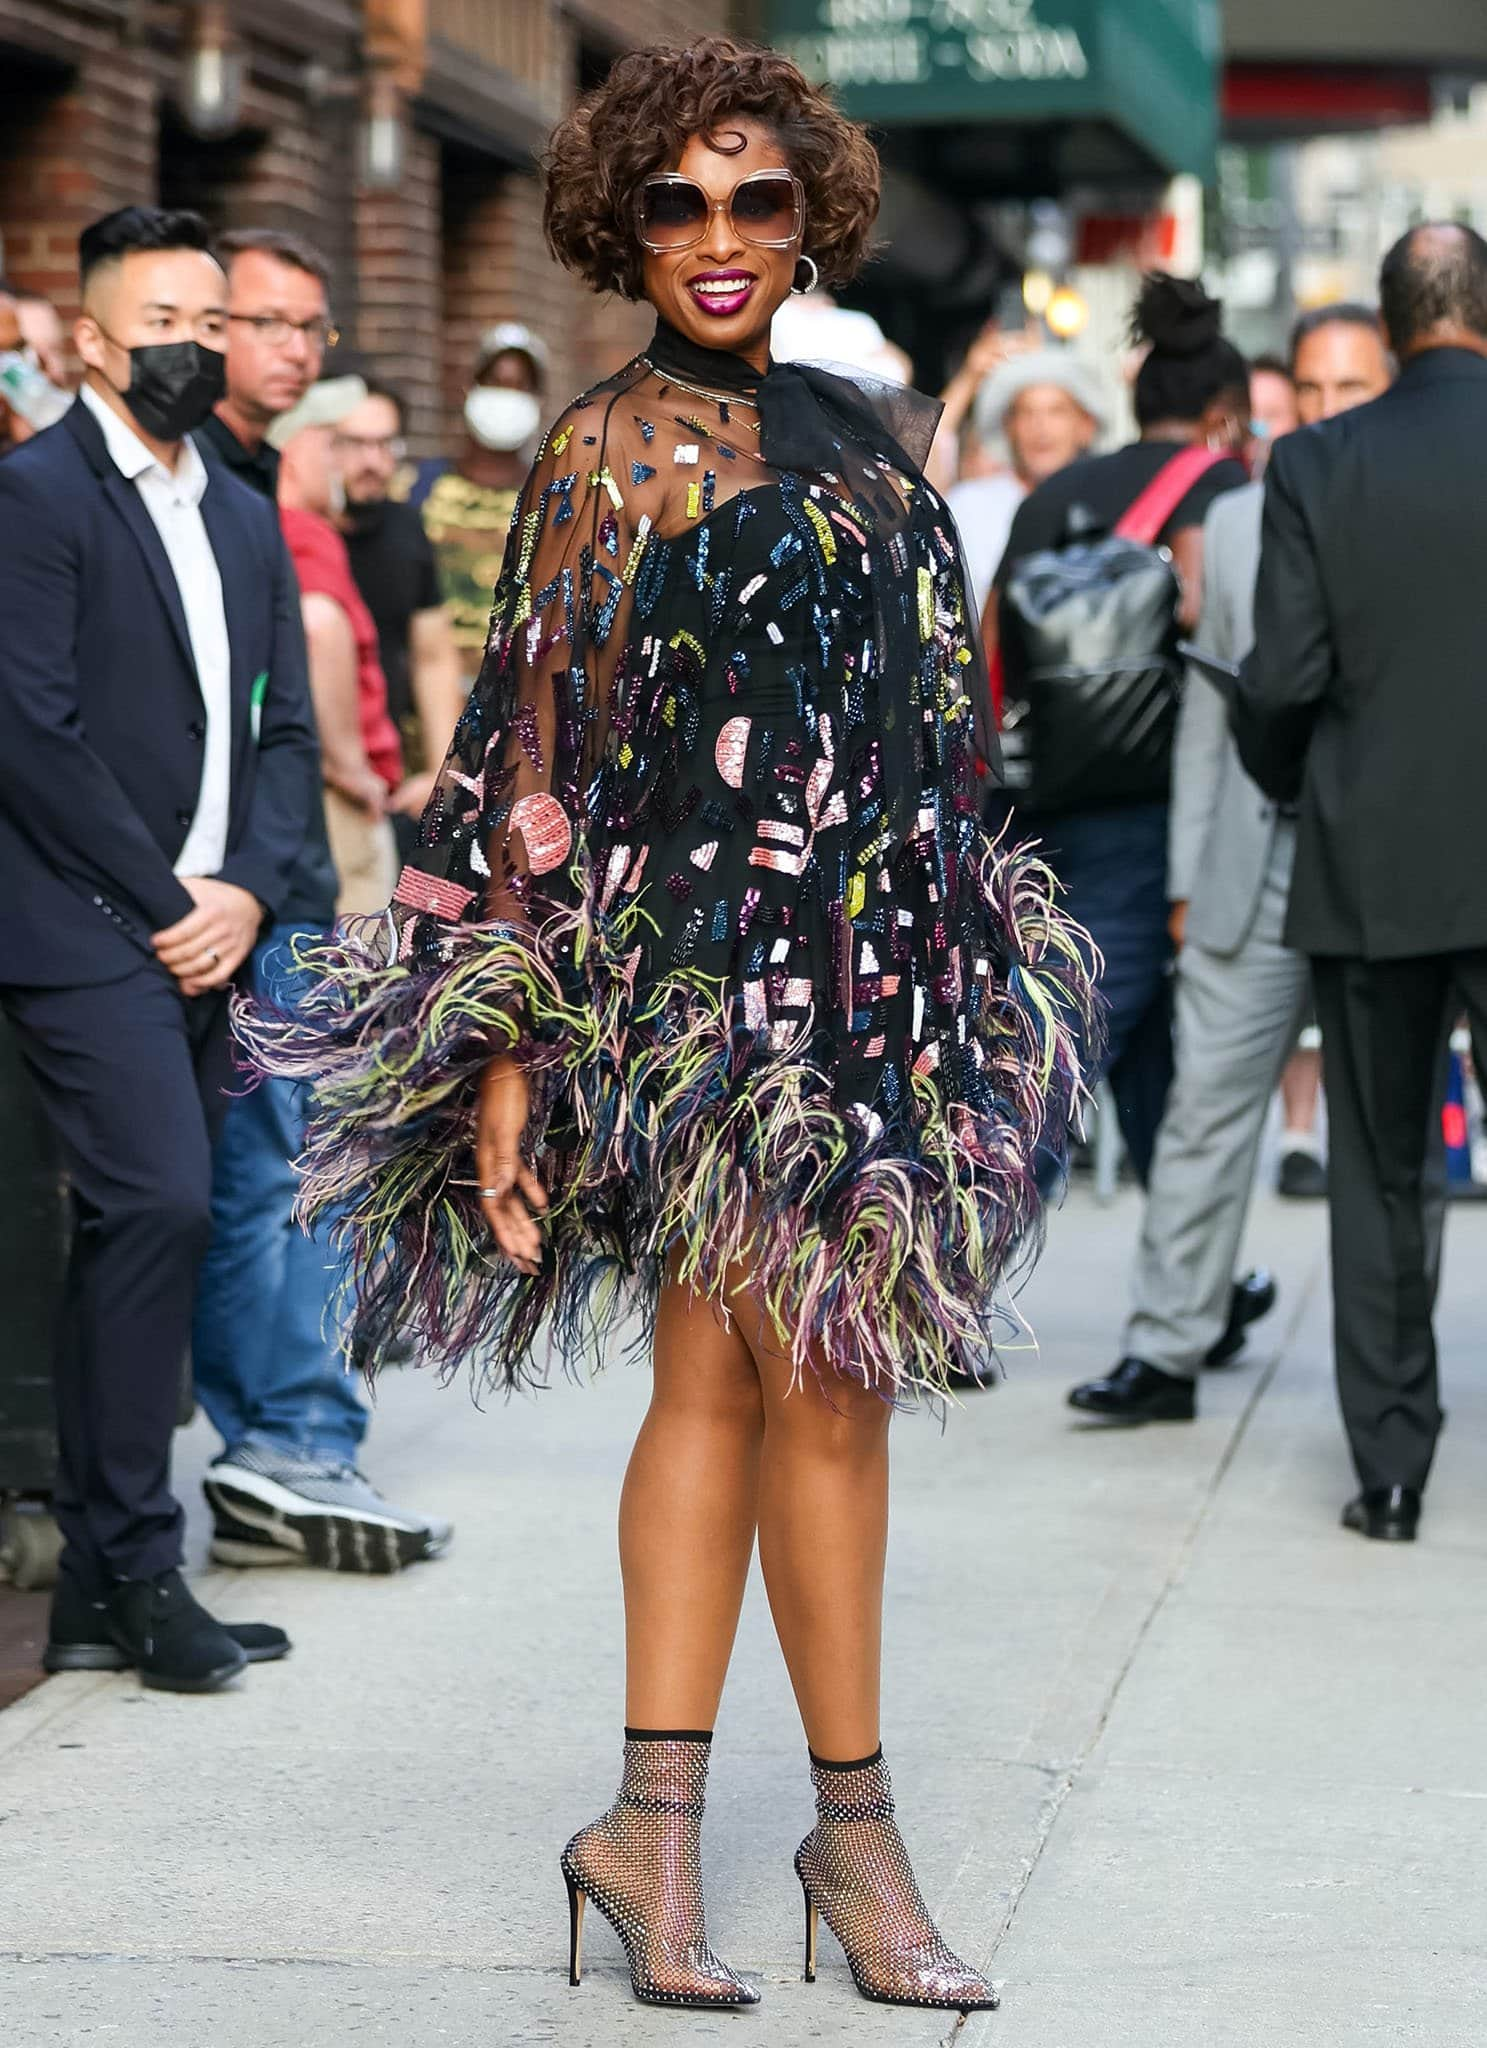 Jennifer Hudson outside Late Show with Stephen Colbert studio at the Ed Sullivan Theatre in New York City on August 12, 2021